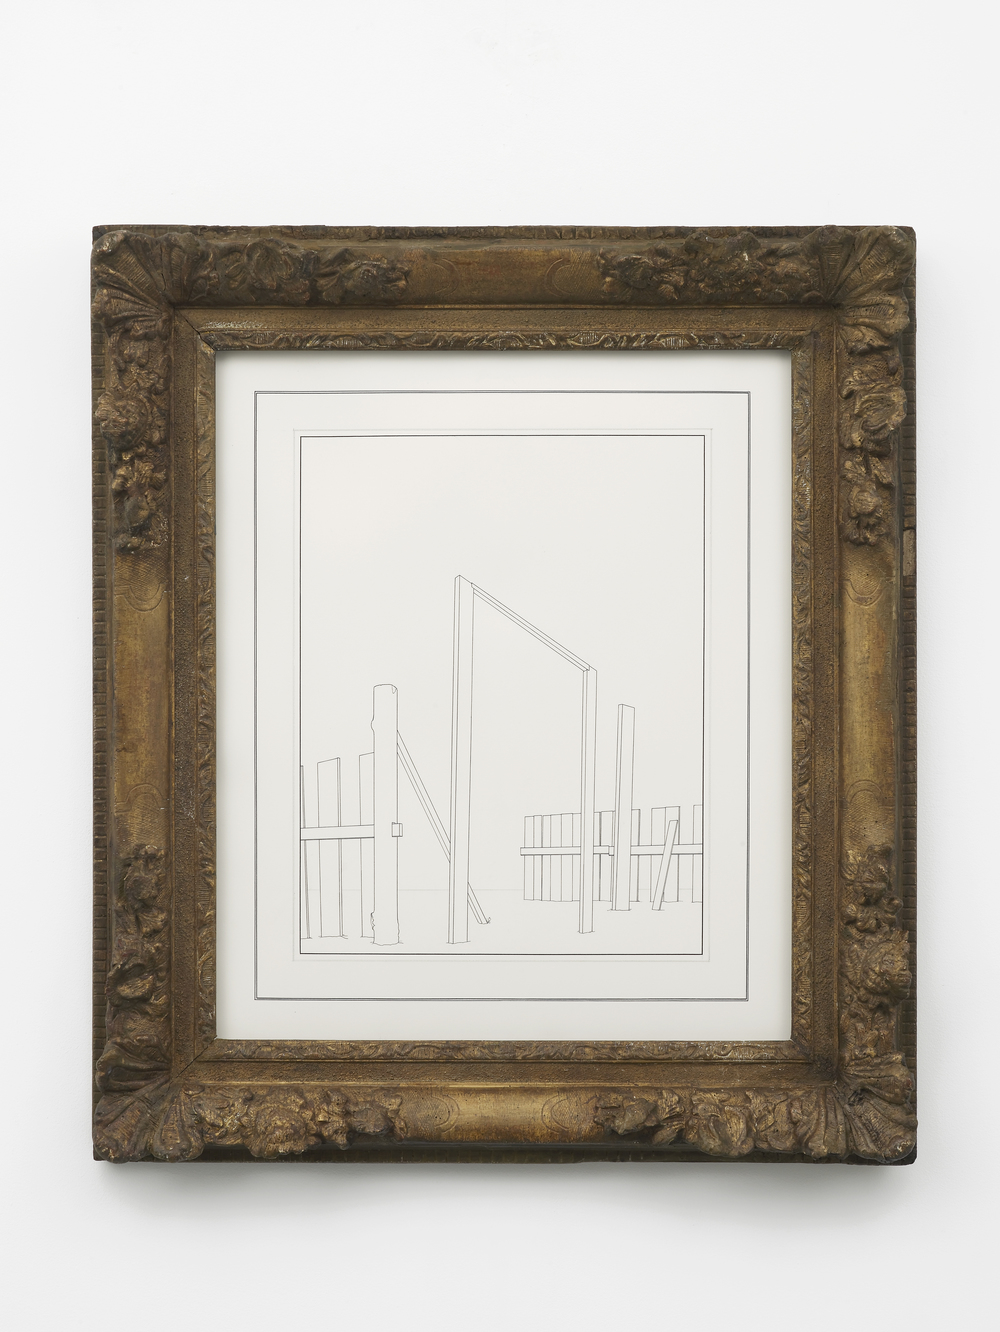 House under Construction 2014 Ink and graphite on paper in artist's frame 80.5 x 71 x 8.5 cm / 31.6 x 27.9 x 3.3 in